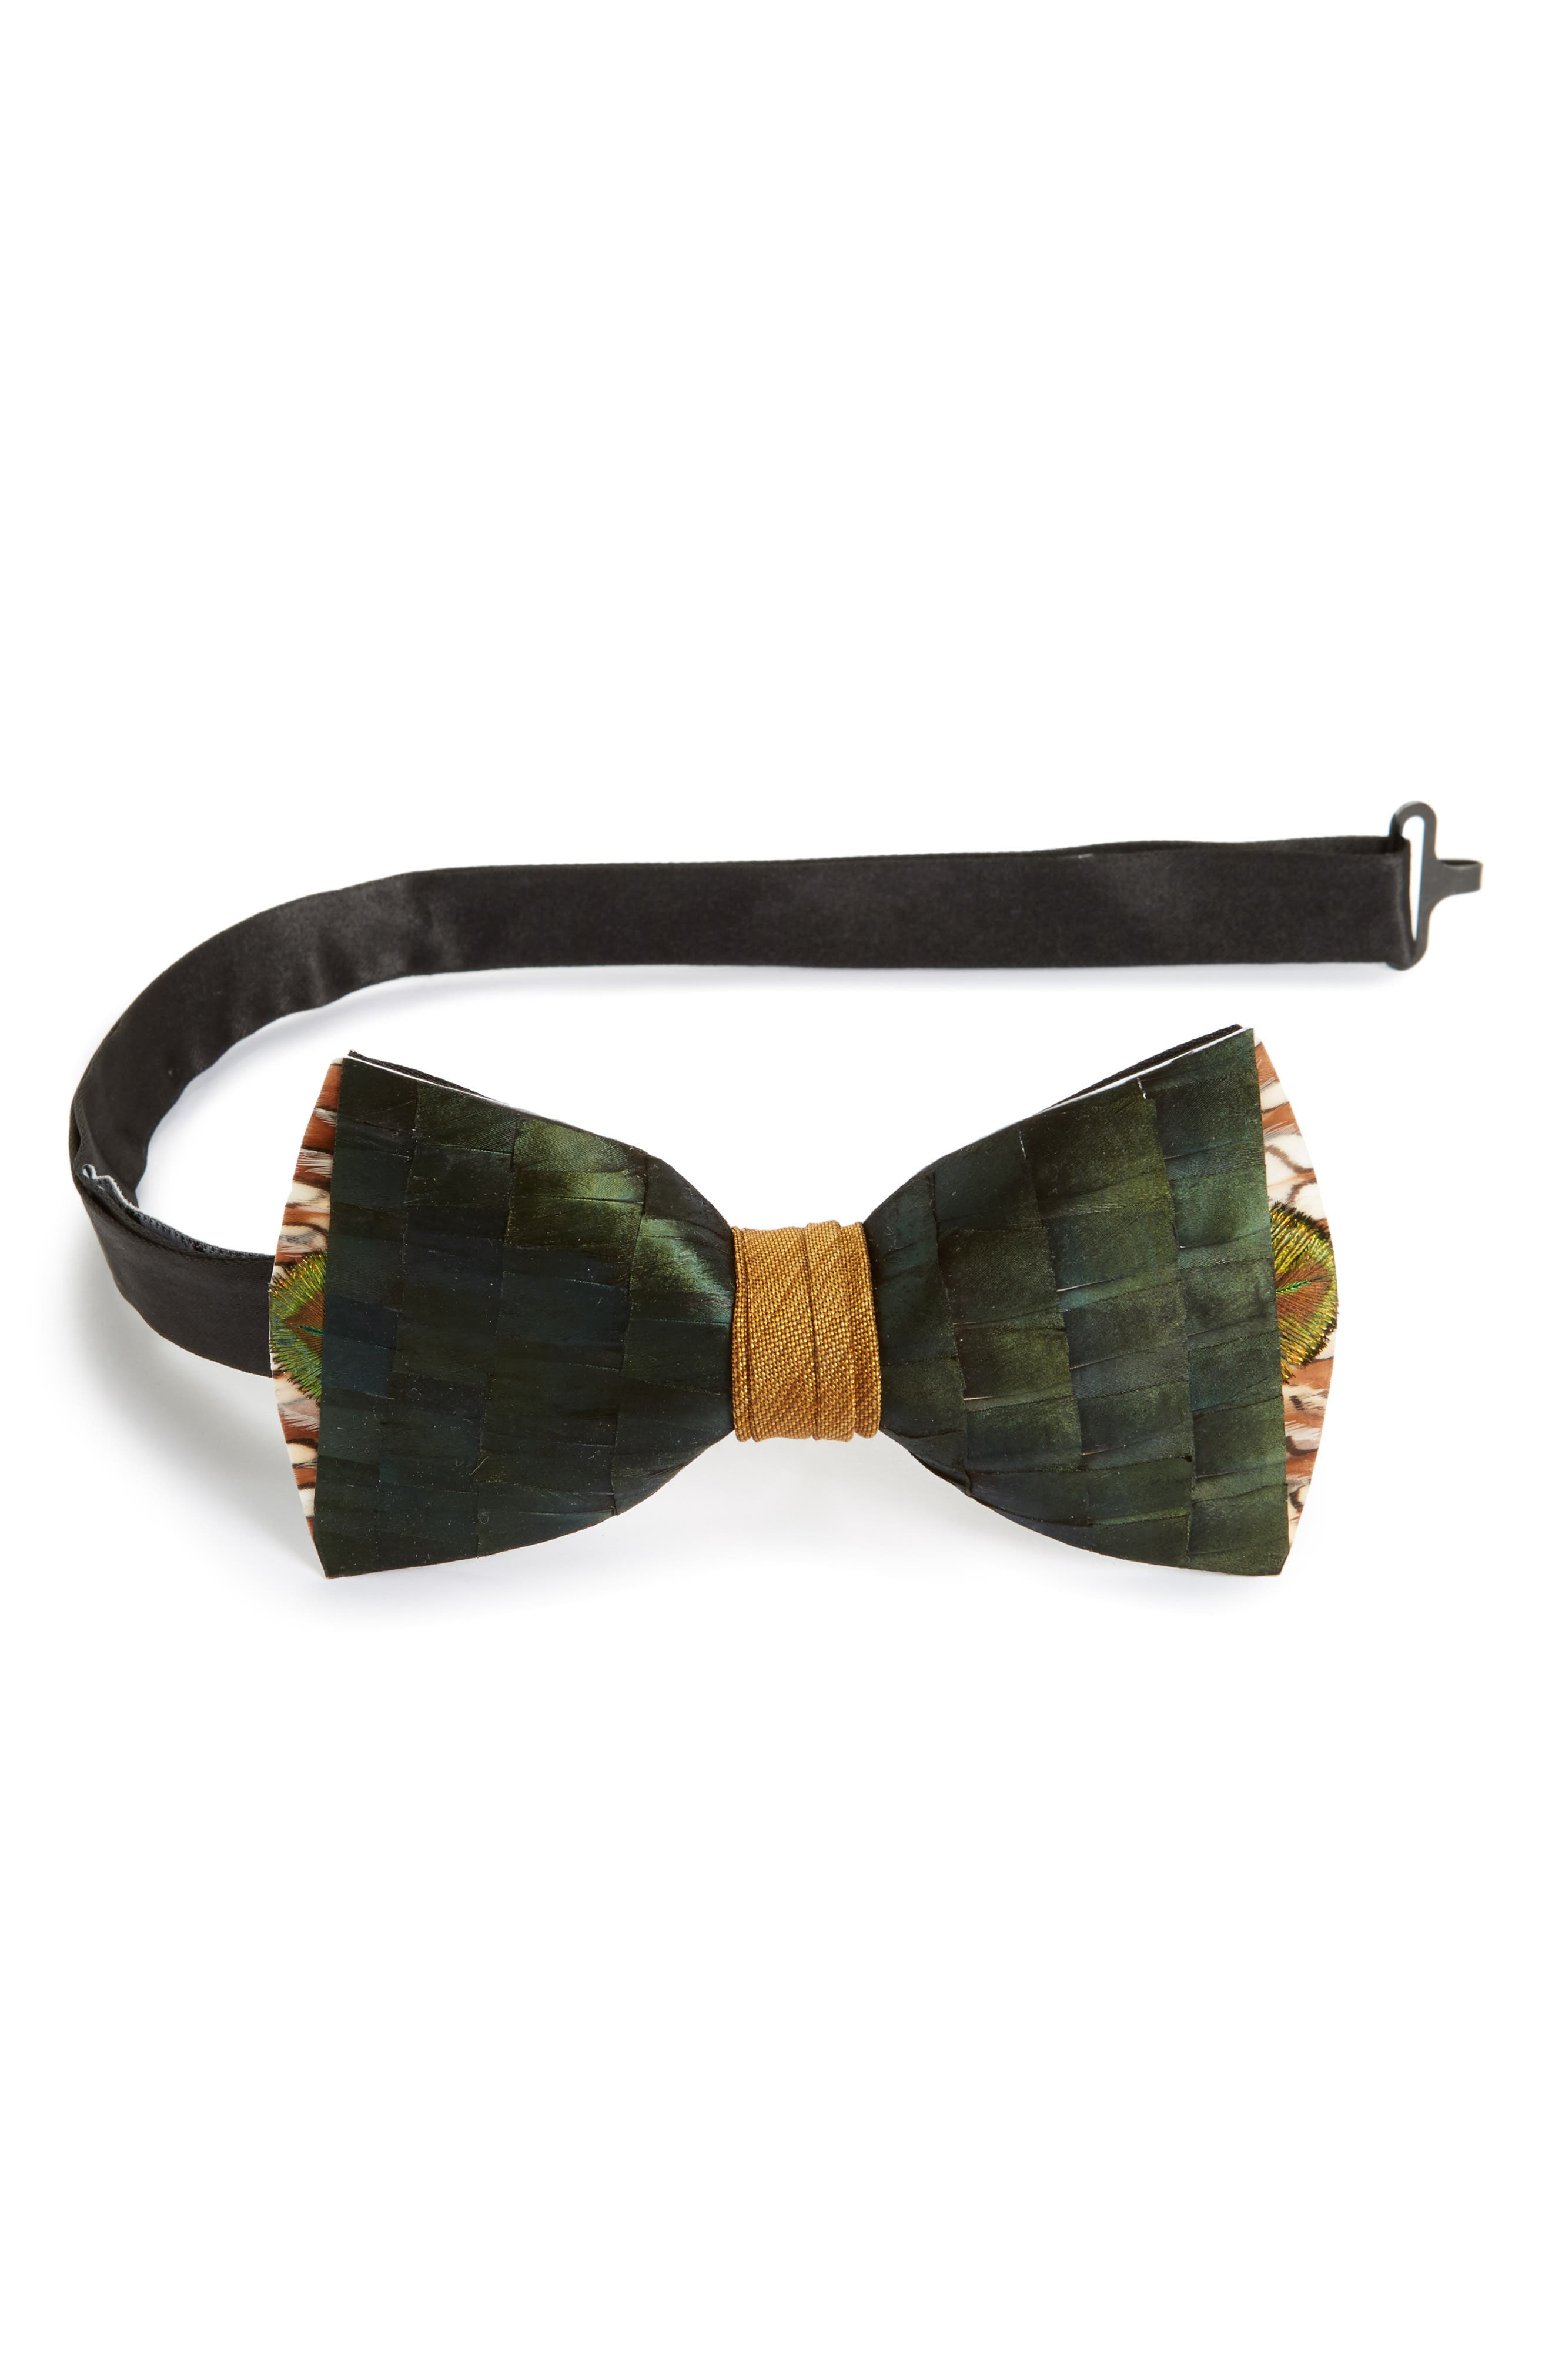 Lowry Feather Bow Tie,                             Main thumbnail 1, color,                             300